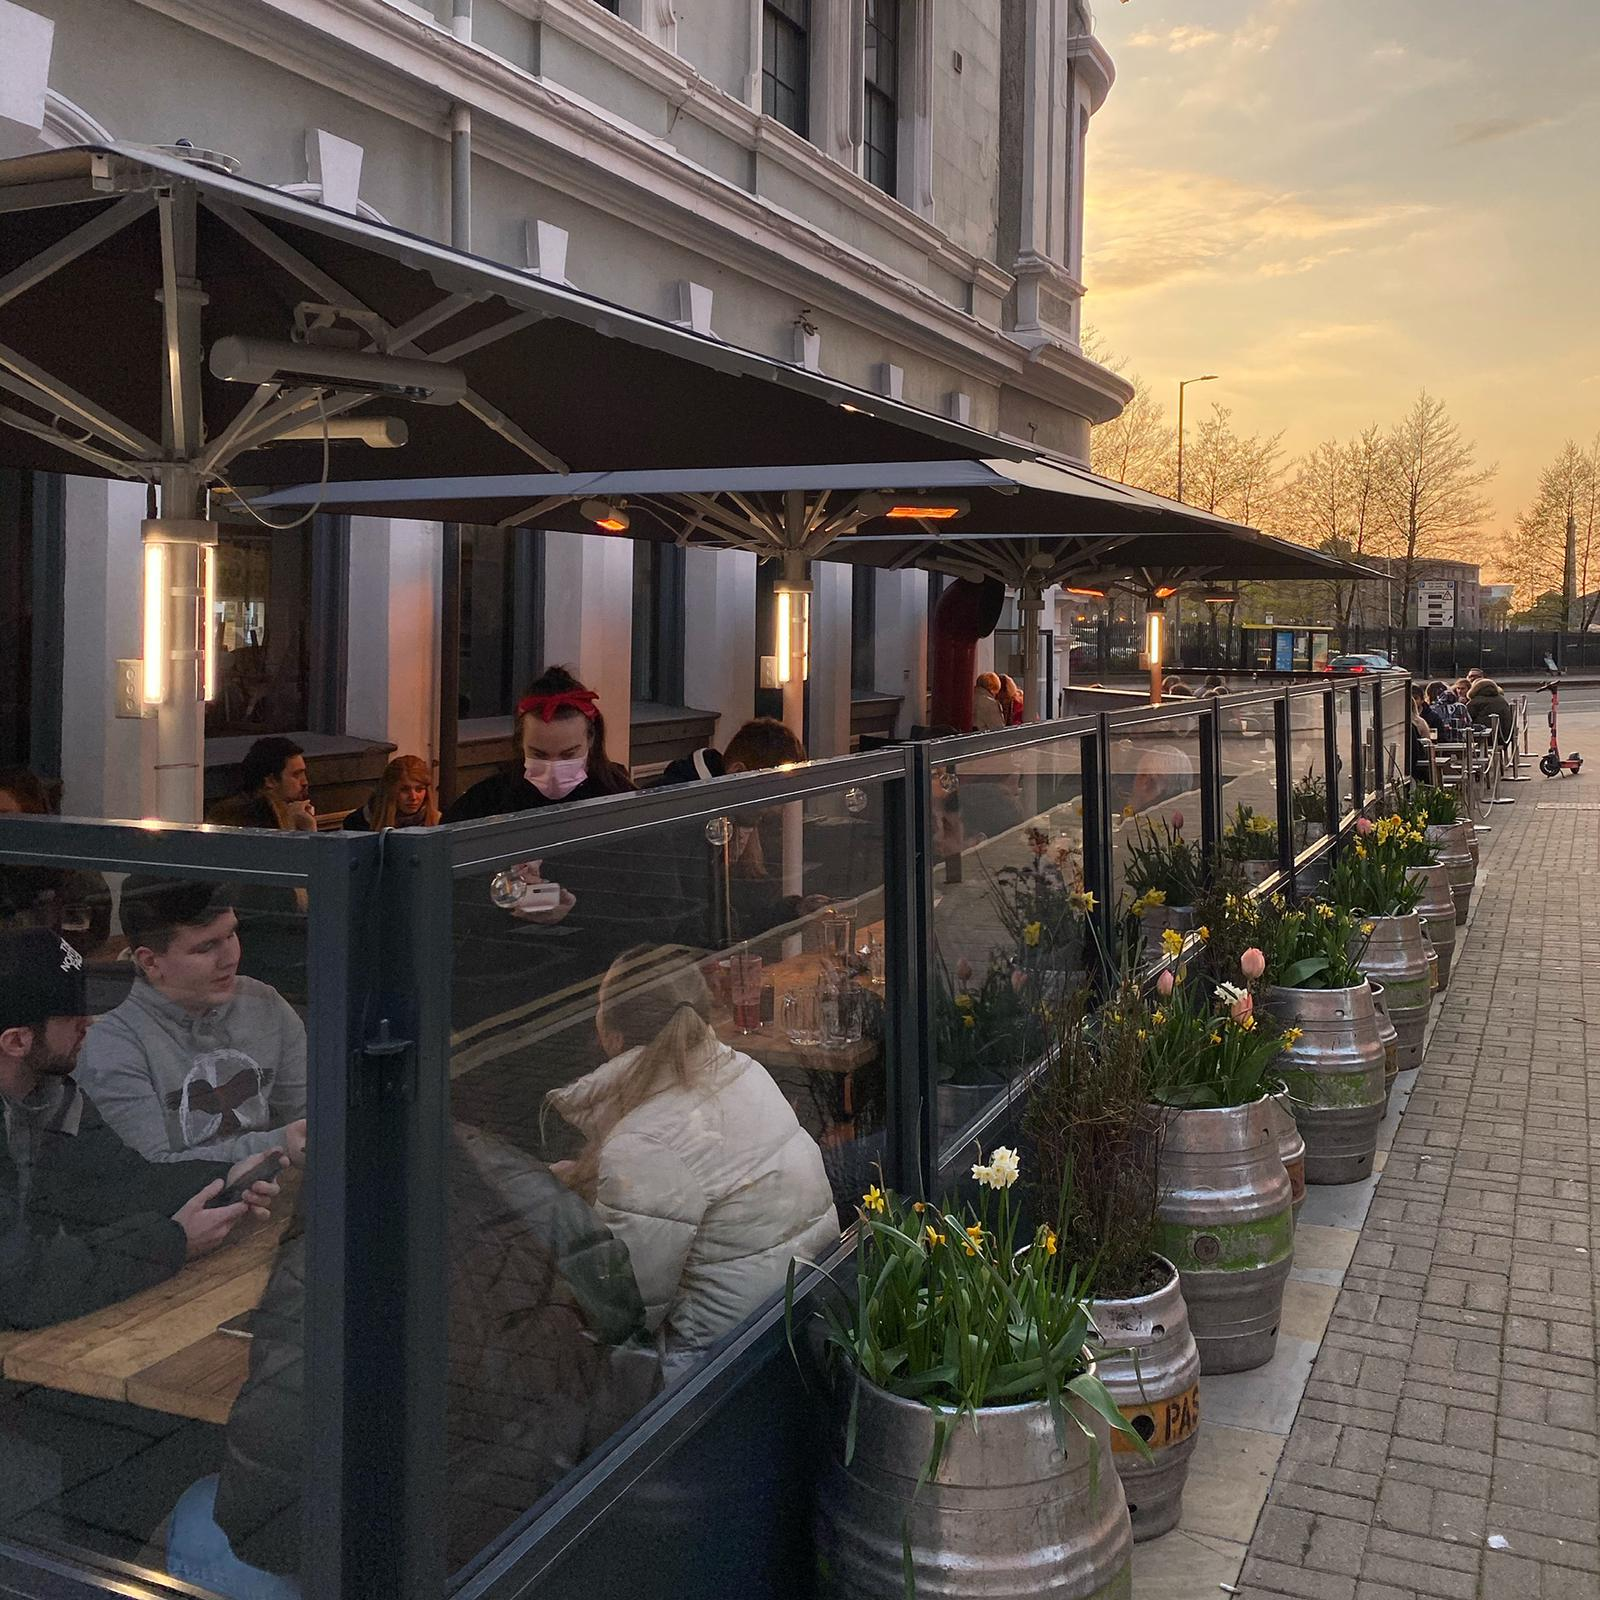 <p>Barriers & Screens – Gibli Terrace Screens – Parasols Outdoor Heaters Baltic Fleet Sunset.</p> <p></p> <p>Suitable for Pub Beer Garden Patio as well as other hospitality alfresco areas including Pub Restaurant Pavement Terraces</p> <p></p> <p>Frames and Glass are available in a variety of colours and options to include corporate branding or sponsor branding are also available.</p> <p></p> <p>Ideal solution to section off alfresco dining areas to allow for 2m social distancing measures, whilst encouraging customer to visit and enjoy what they have always liked to do, dine and socialise</p> <p></p> <p>Includes Parasols & outdoor Heaters to keep people dry & warm whatever the weather</p>